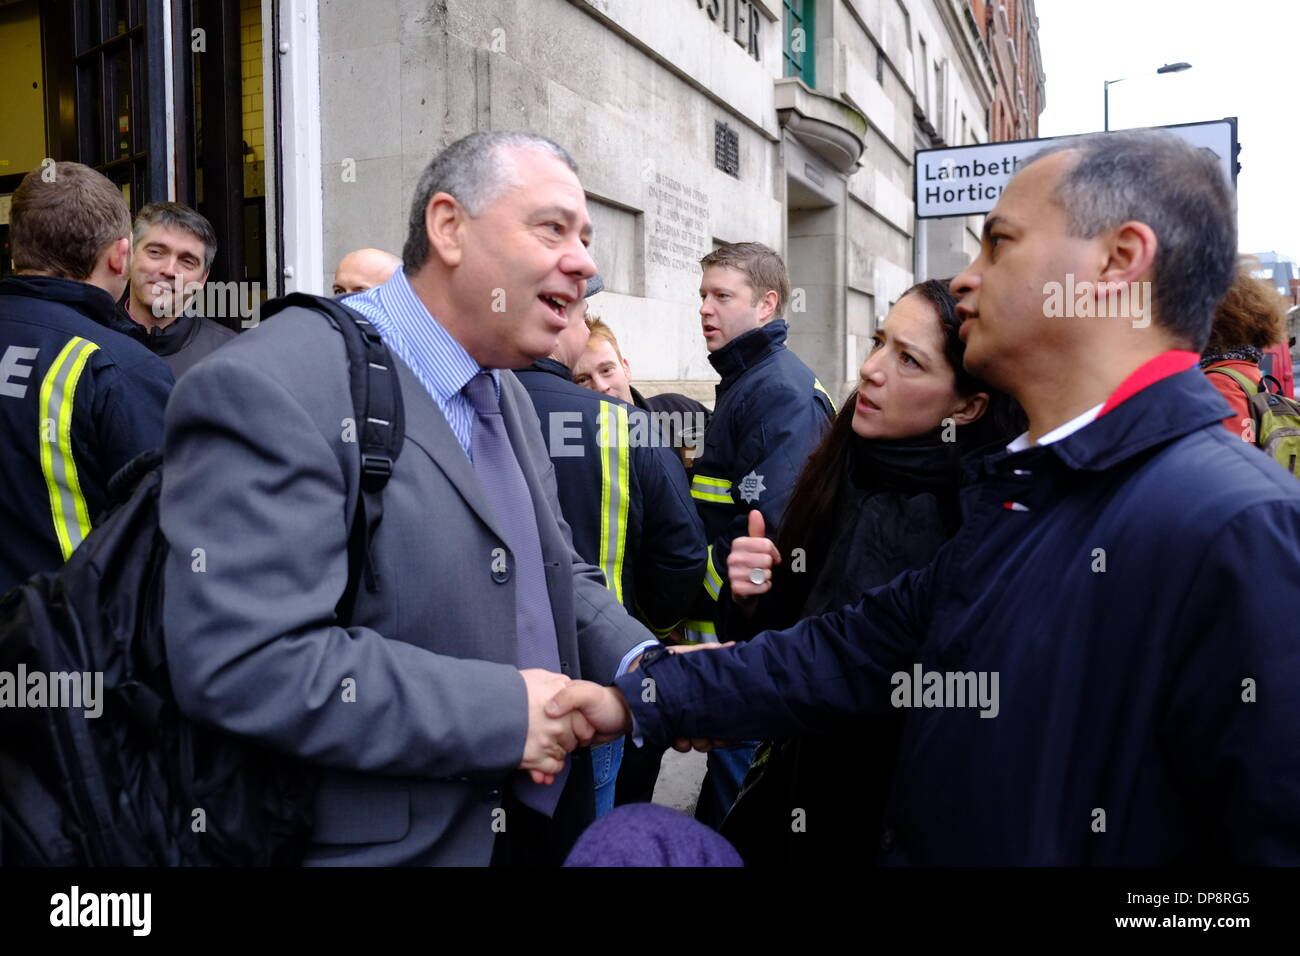 London, UK. 09th Jan, 2014. Archie Chandler shakes hands with Muad Qureshi from London Assembly as Fire Brigade staff and supporters gather at Westminster Fire Station for the last time before it shut at 9.30am. Credit:  Rachel Megawhat/Alamy Live News - Stock Image